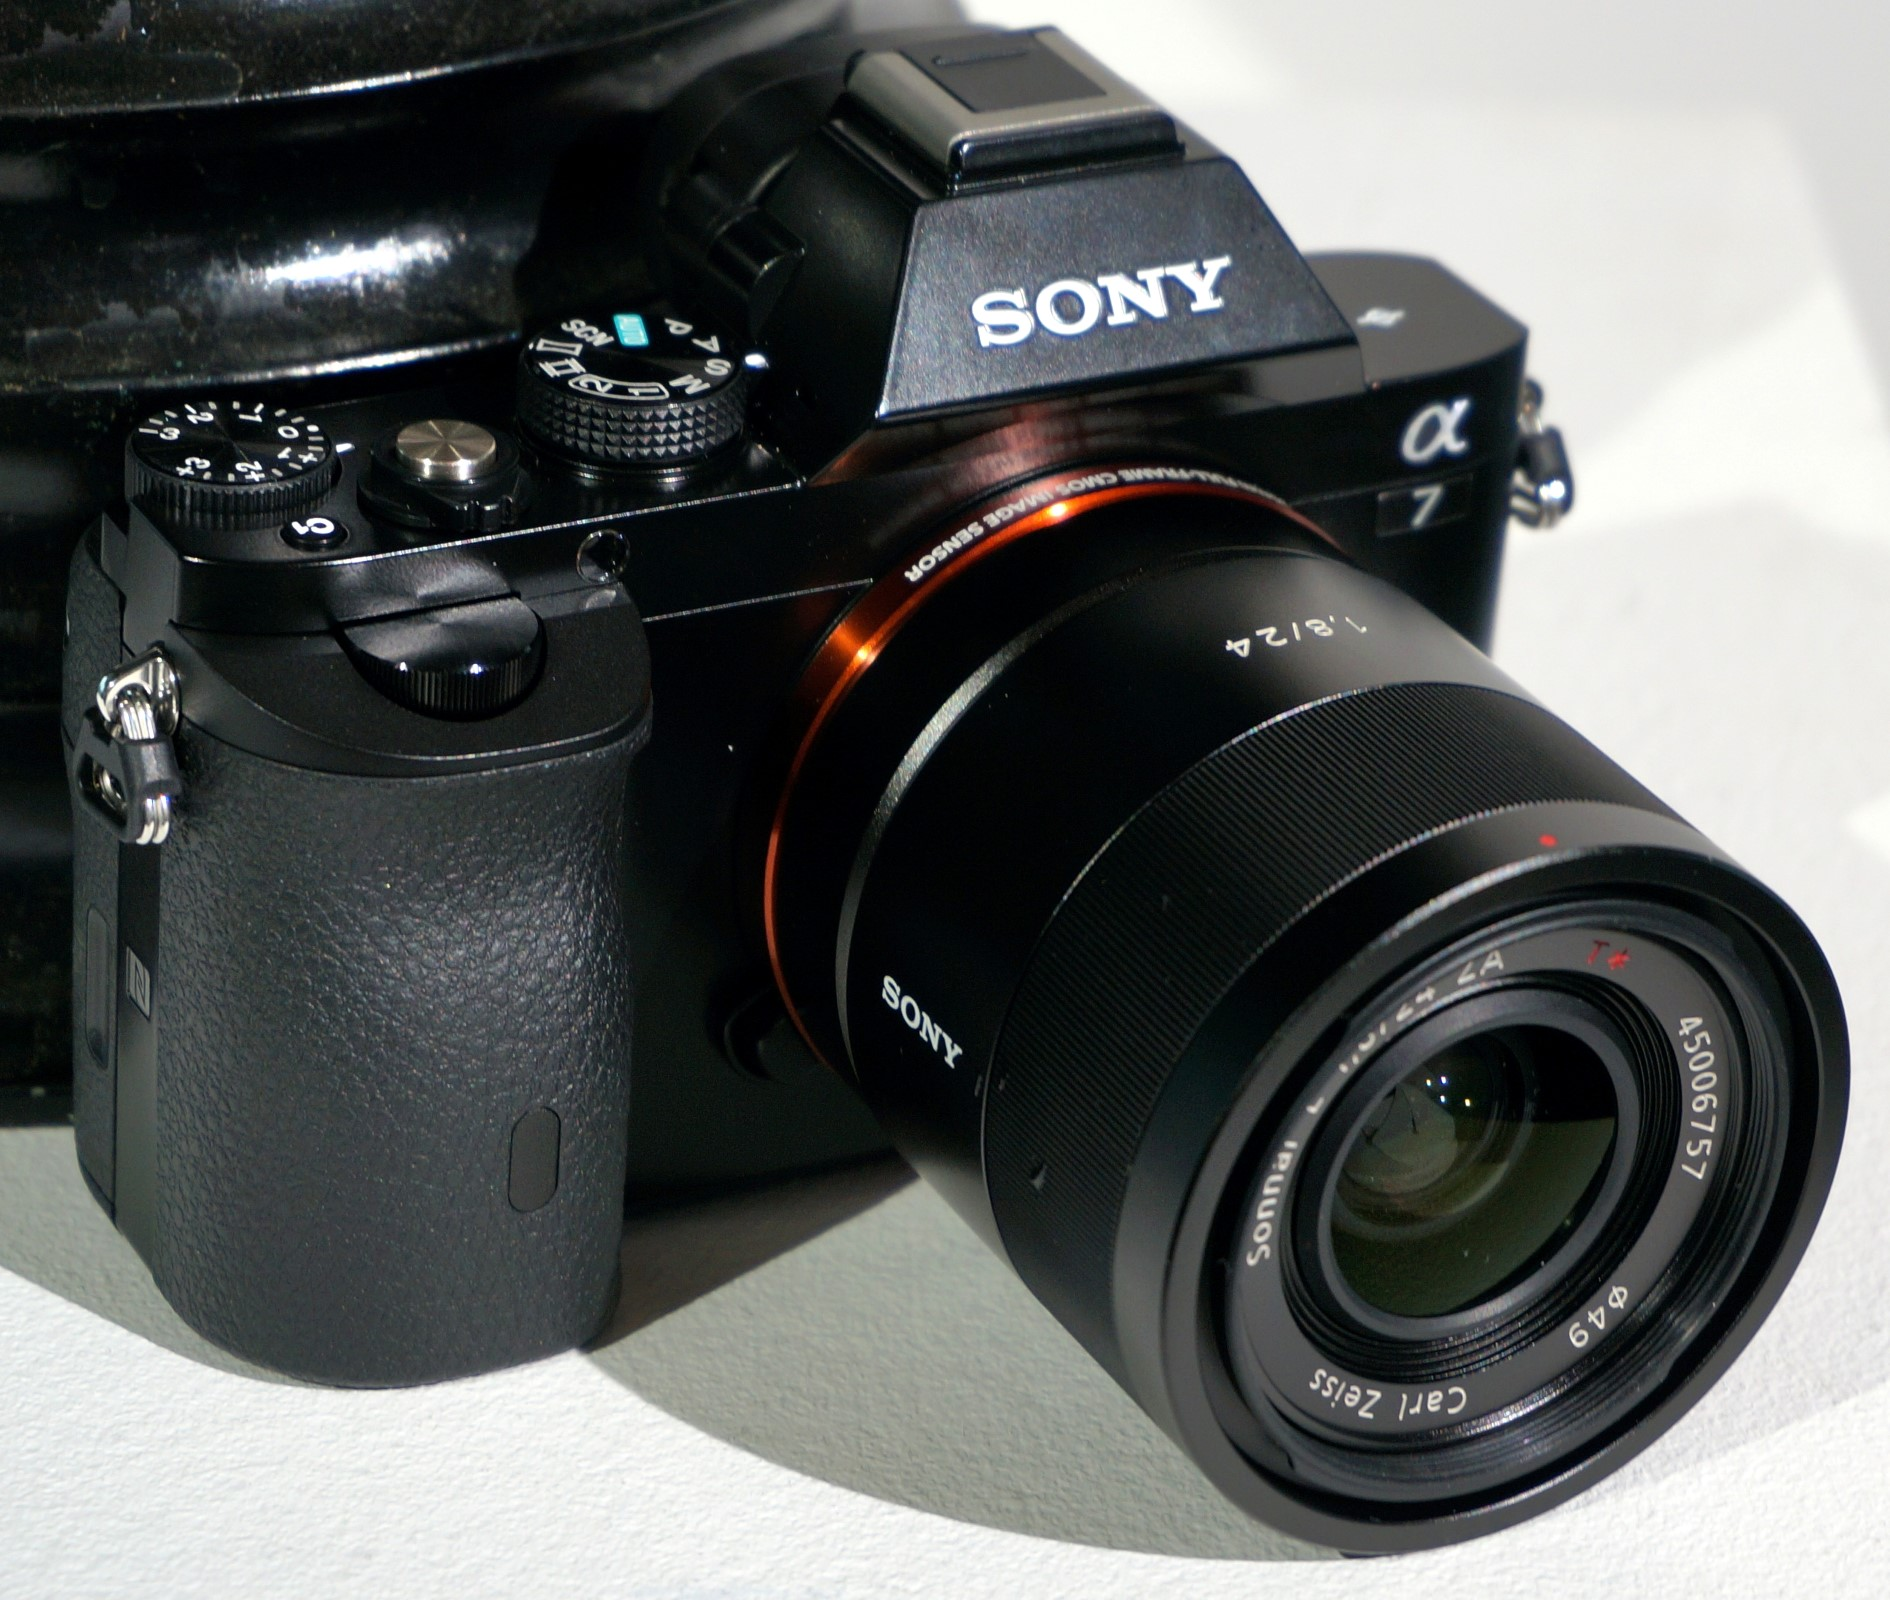 Sony CyberShot RX10, Alpha 7 and Alpha 7R Launched - Alpha 7